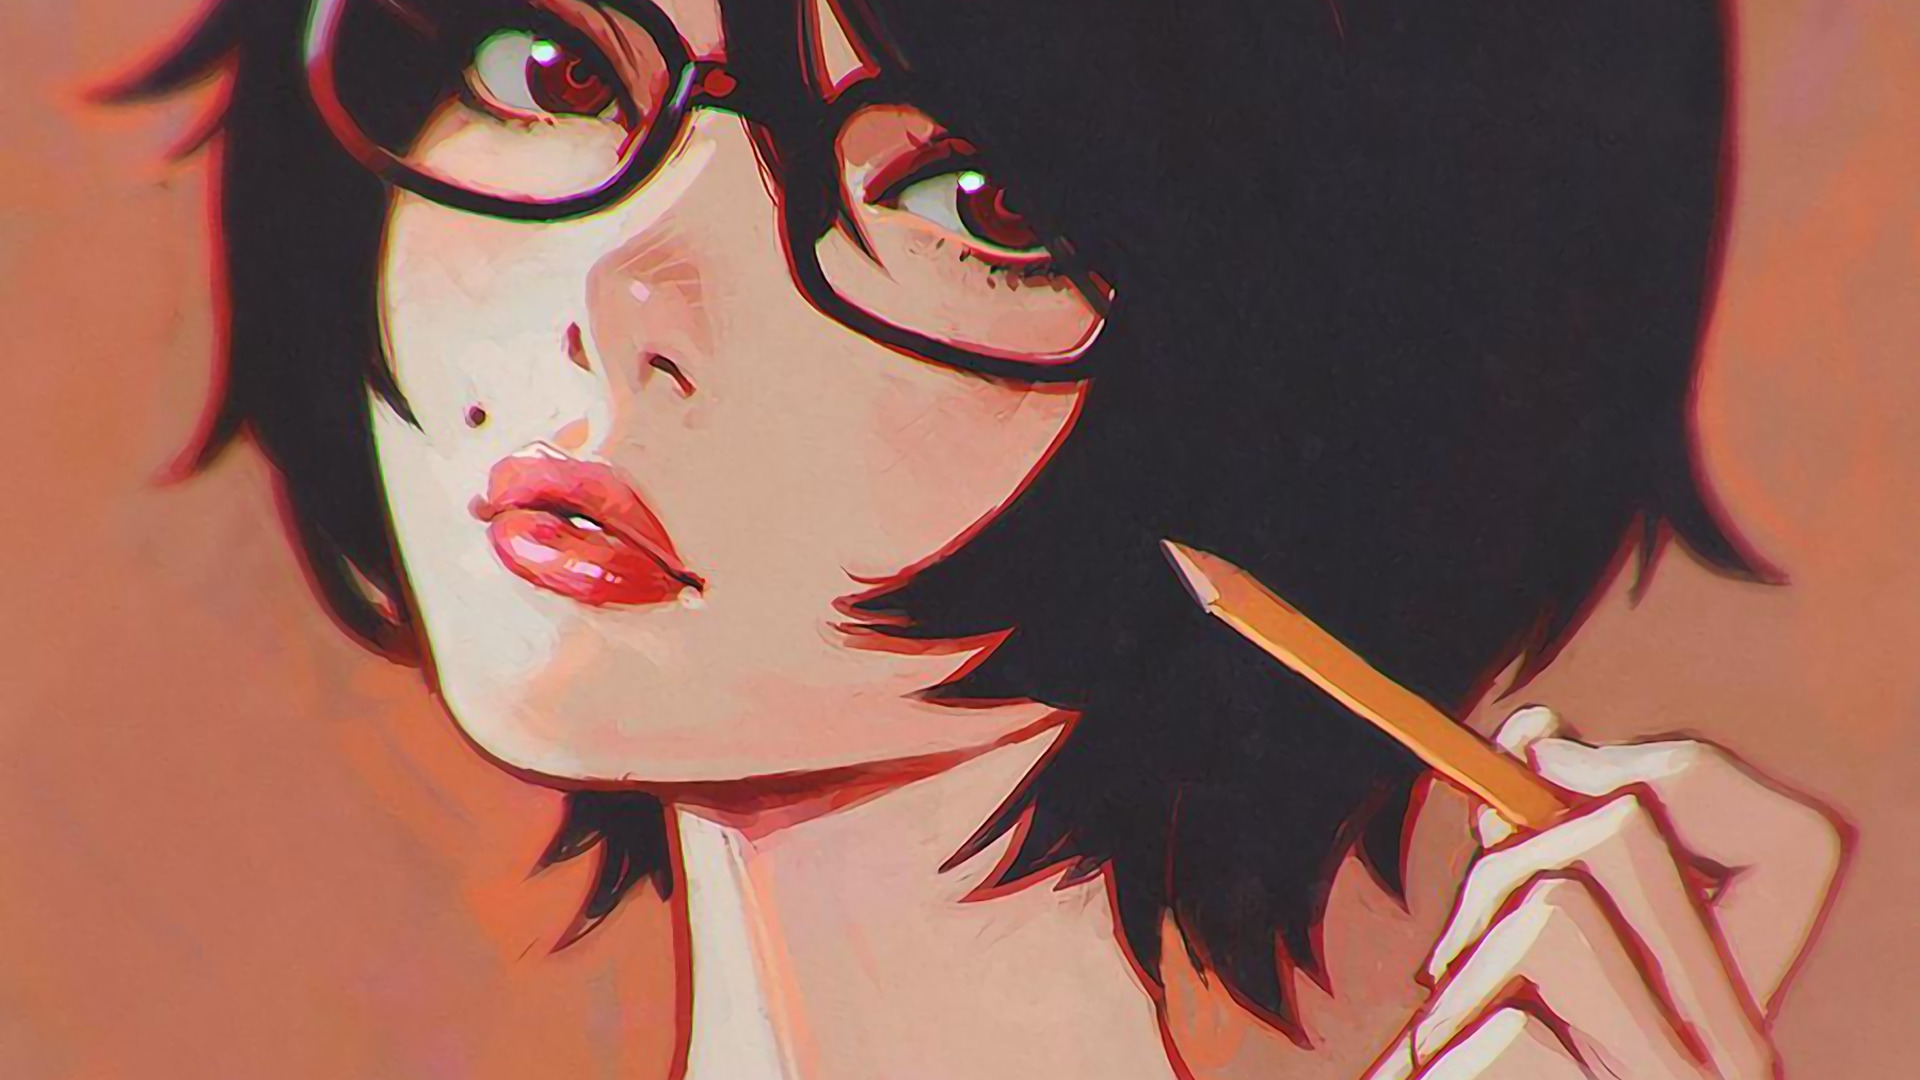 Sad Girl Sketch Wallpaper Ilya Kuvshinov Drawing Cartoon Glasses Wallpapers Hd